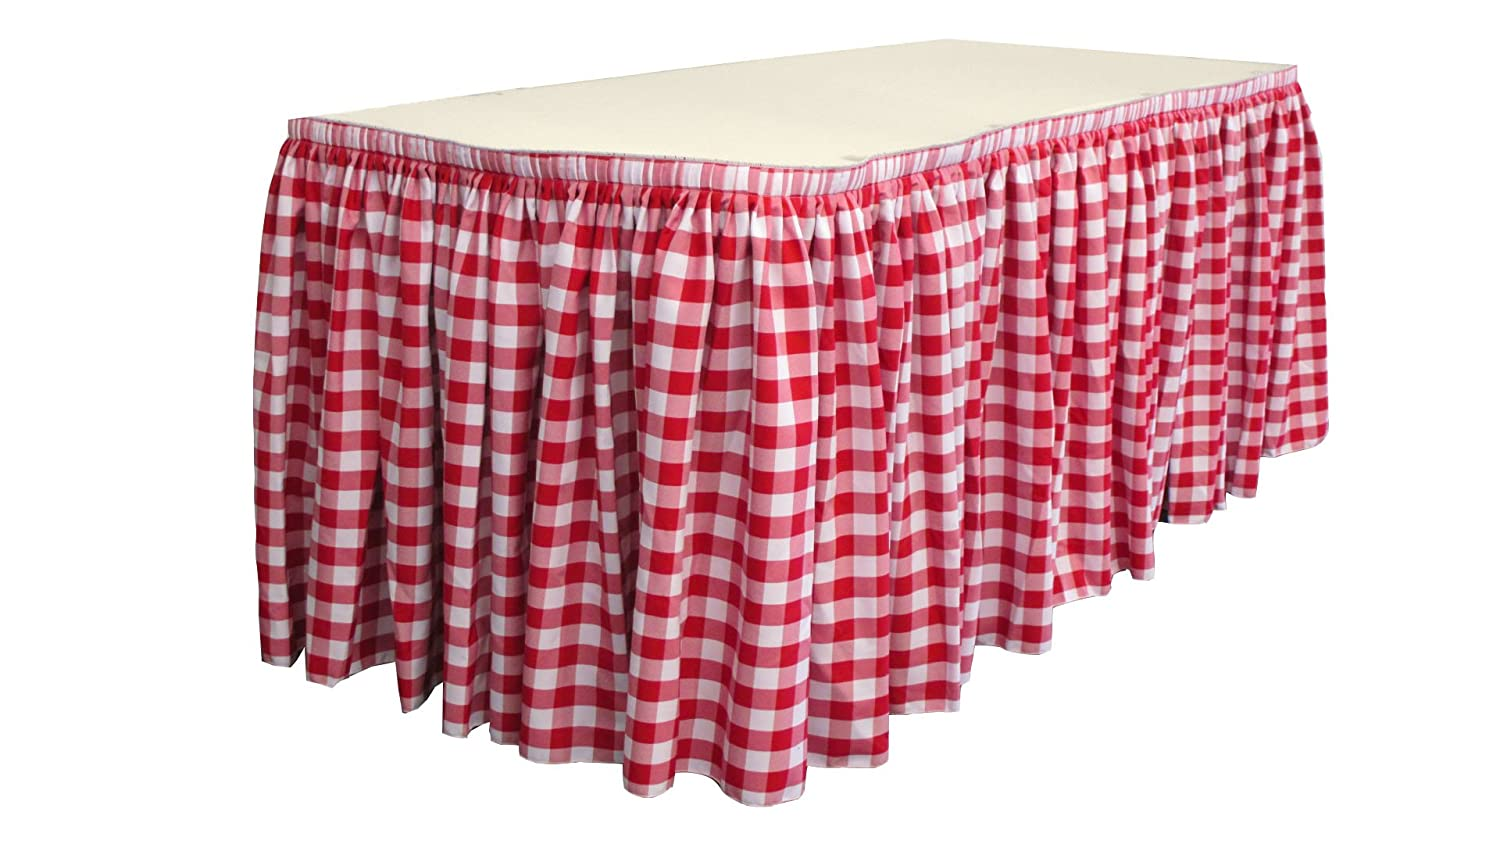 Light Yellow//White 14 by 29 LA Linen Poly Checkered Table Skirt with 10 Large Clips